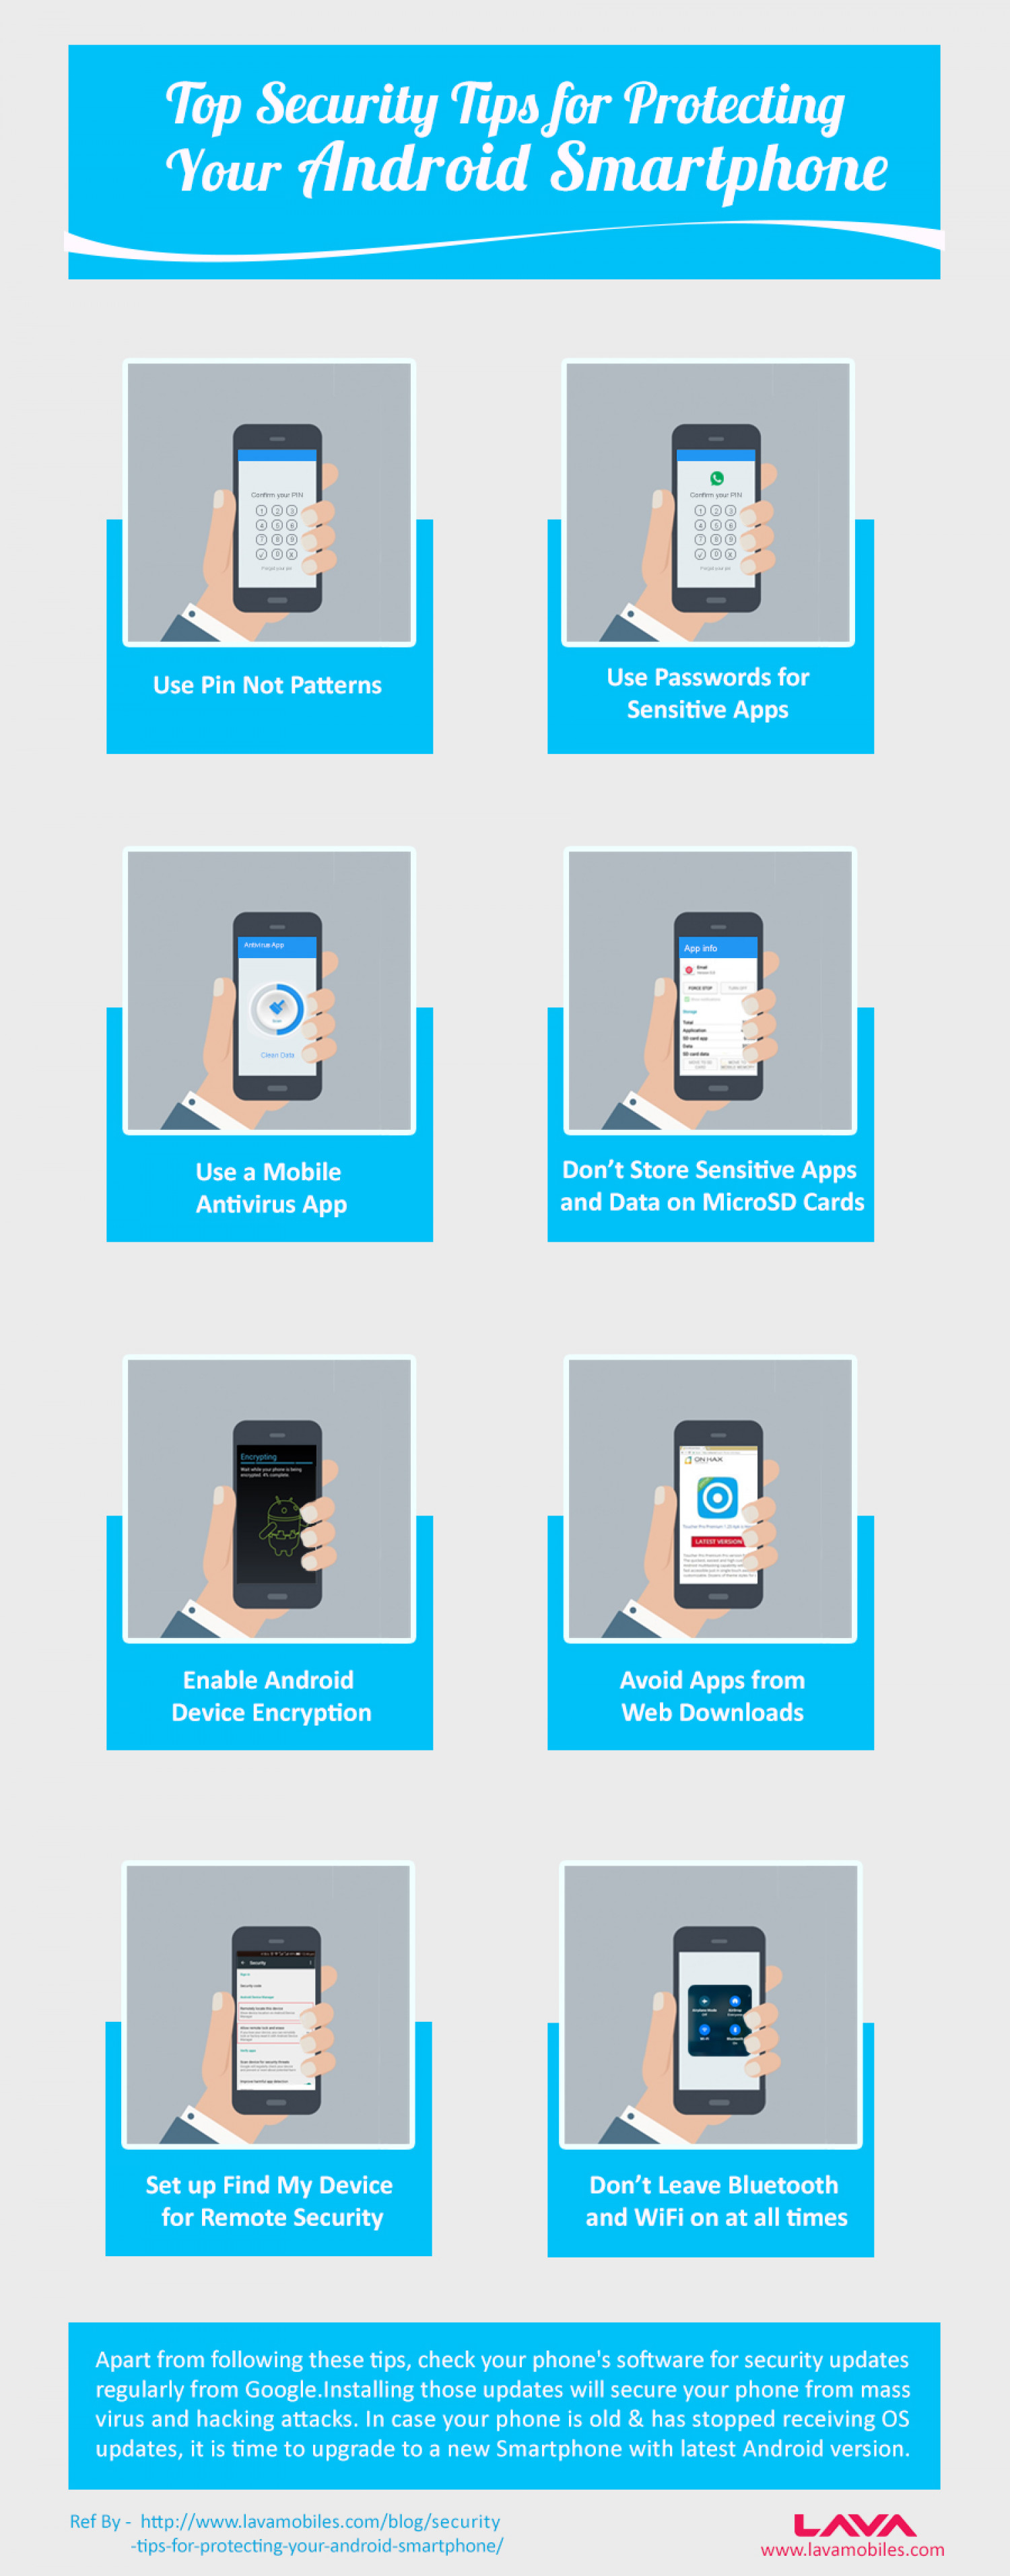 Top Security Tips for Protecting Your Android Smartphone Infographic